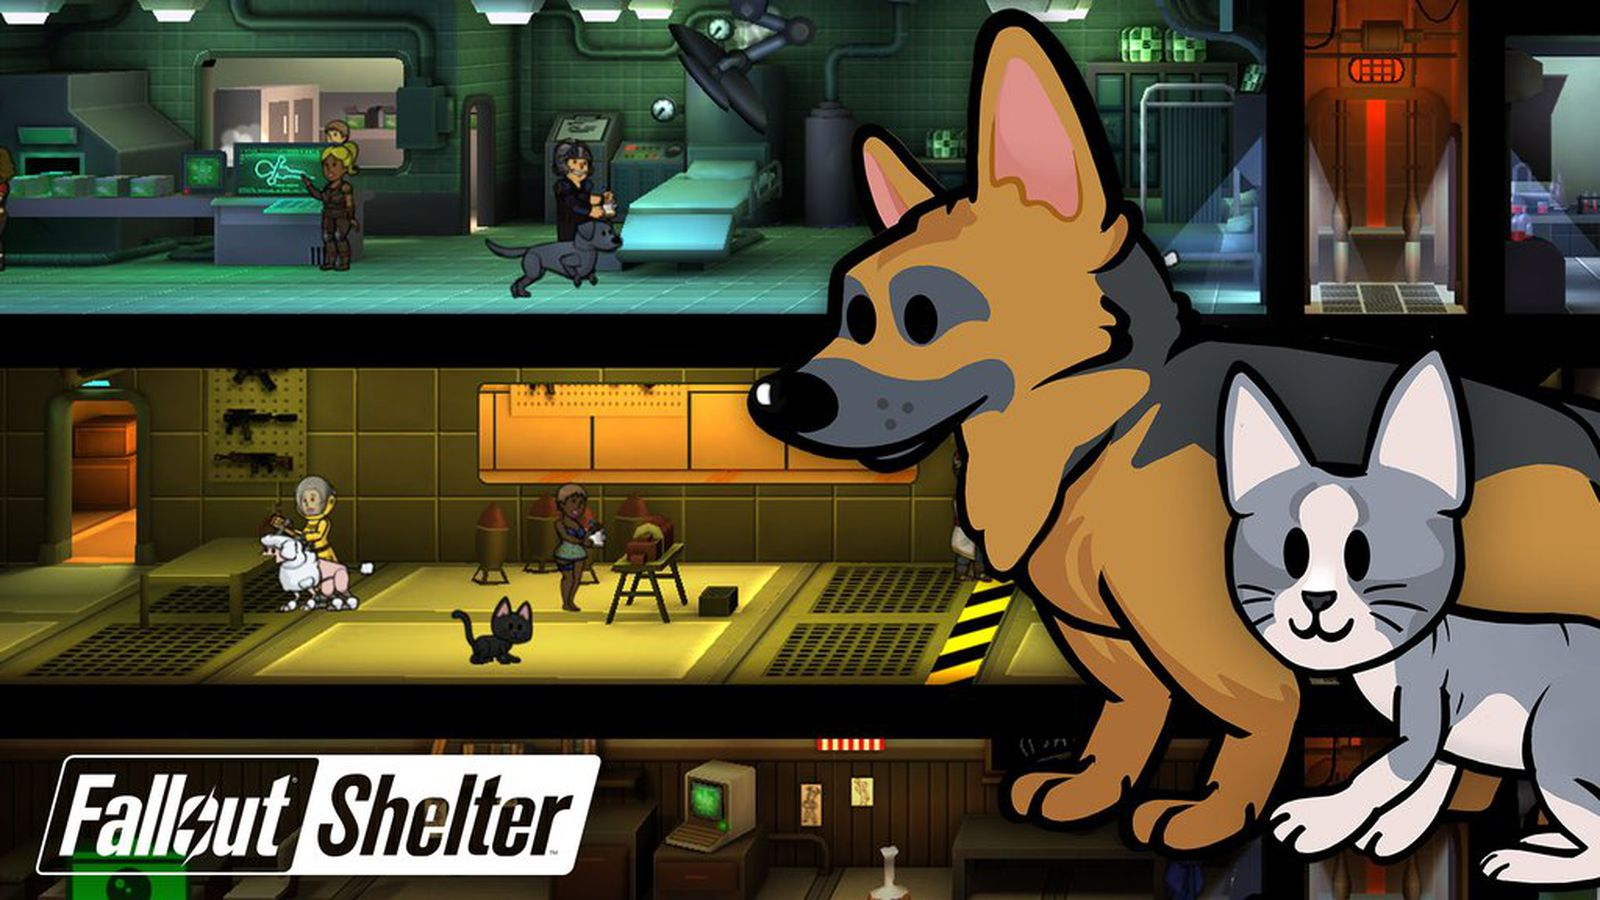 Fall Out Boy Android Wallpaper Fallout Shelter Introduces Dogmeat And Other Pets To The